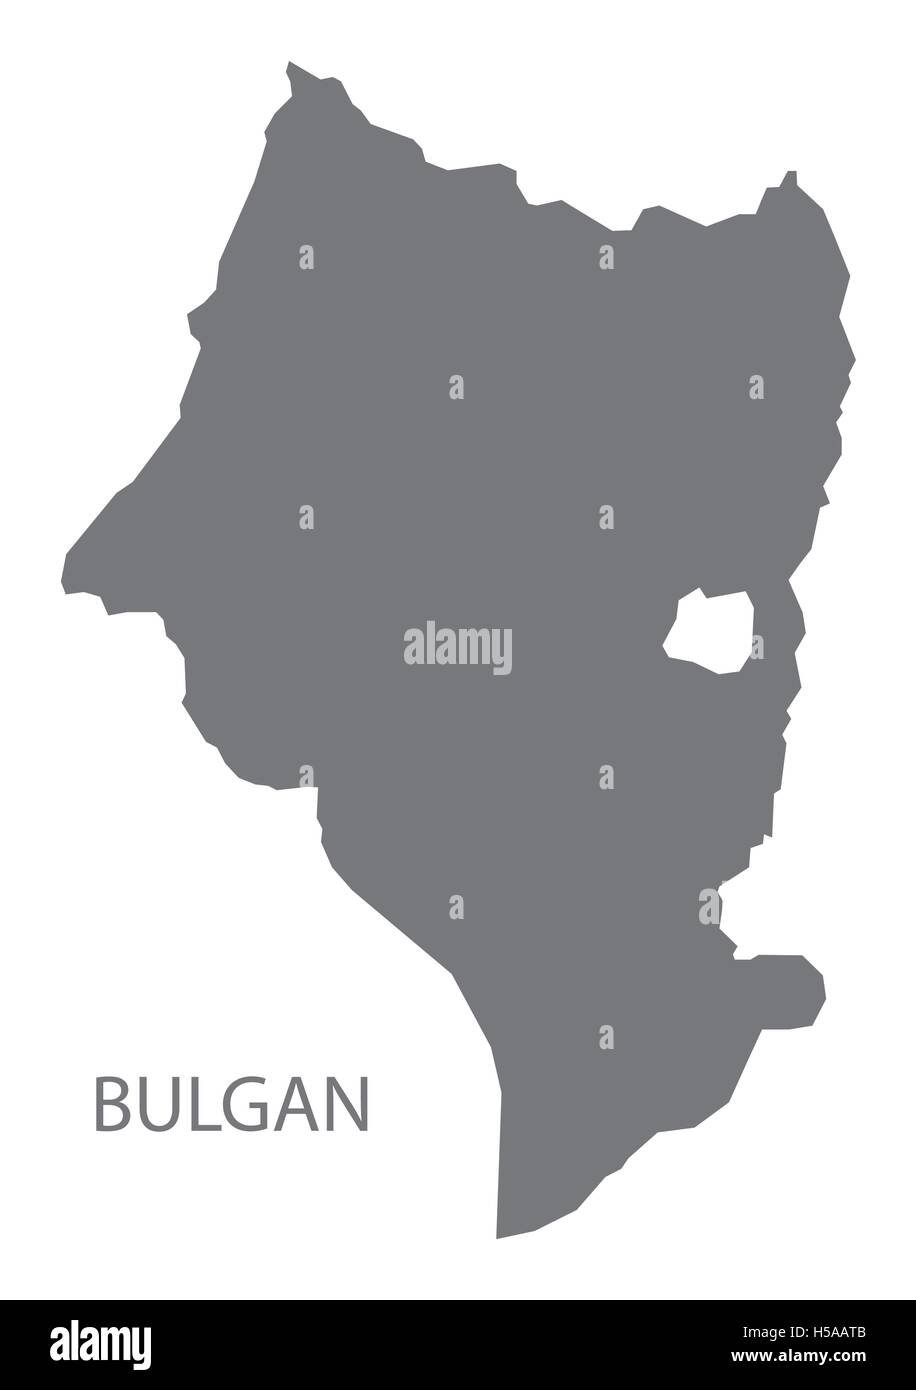 Bulgan Mongolia Map grey - Stock Vector